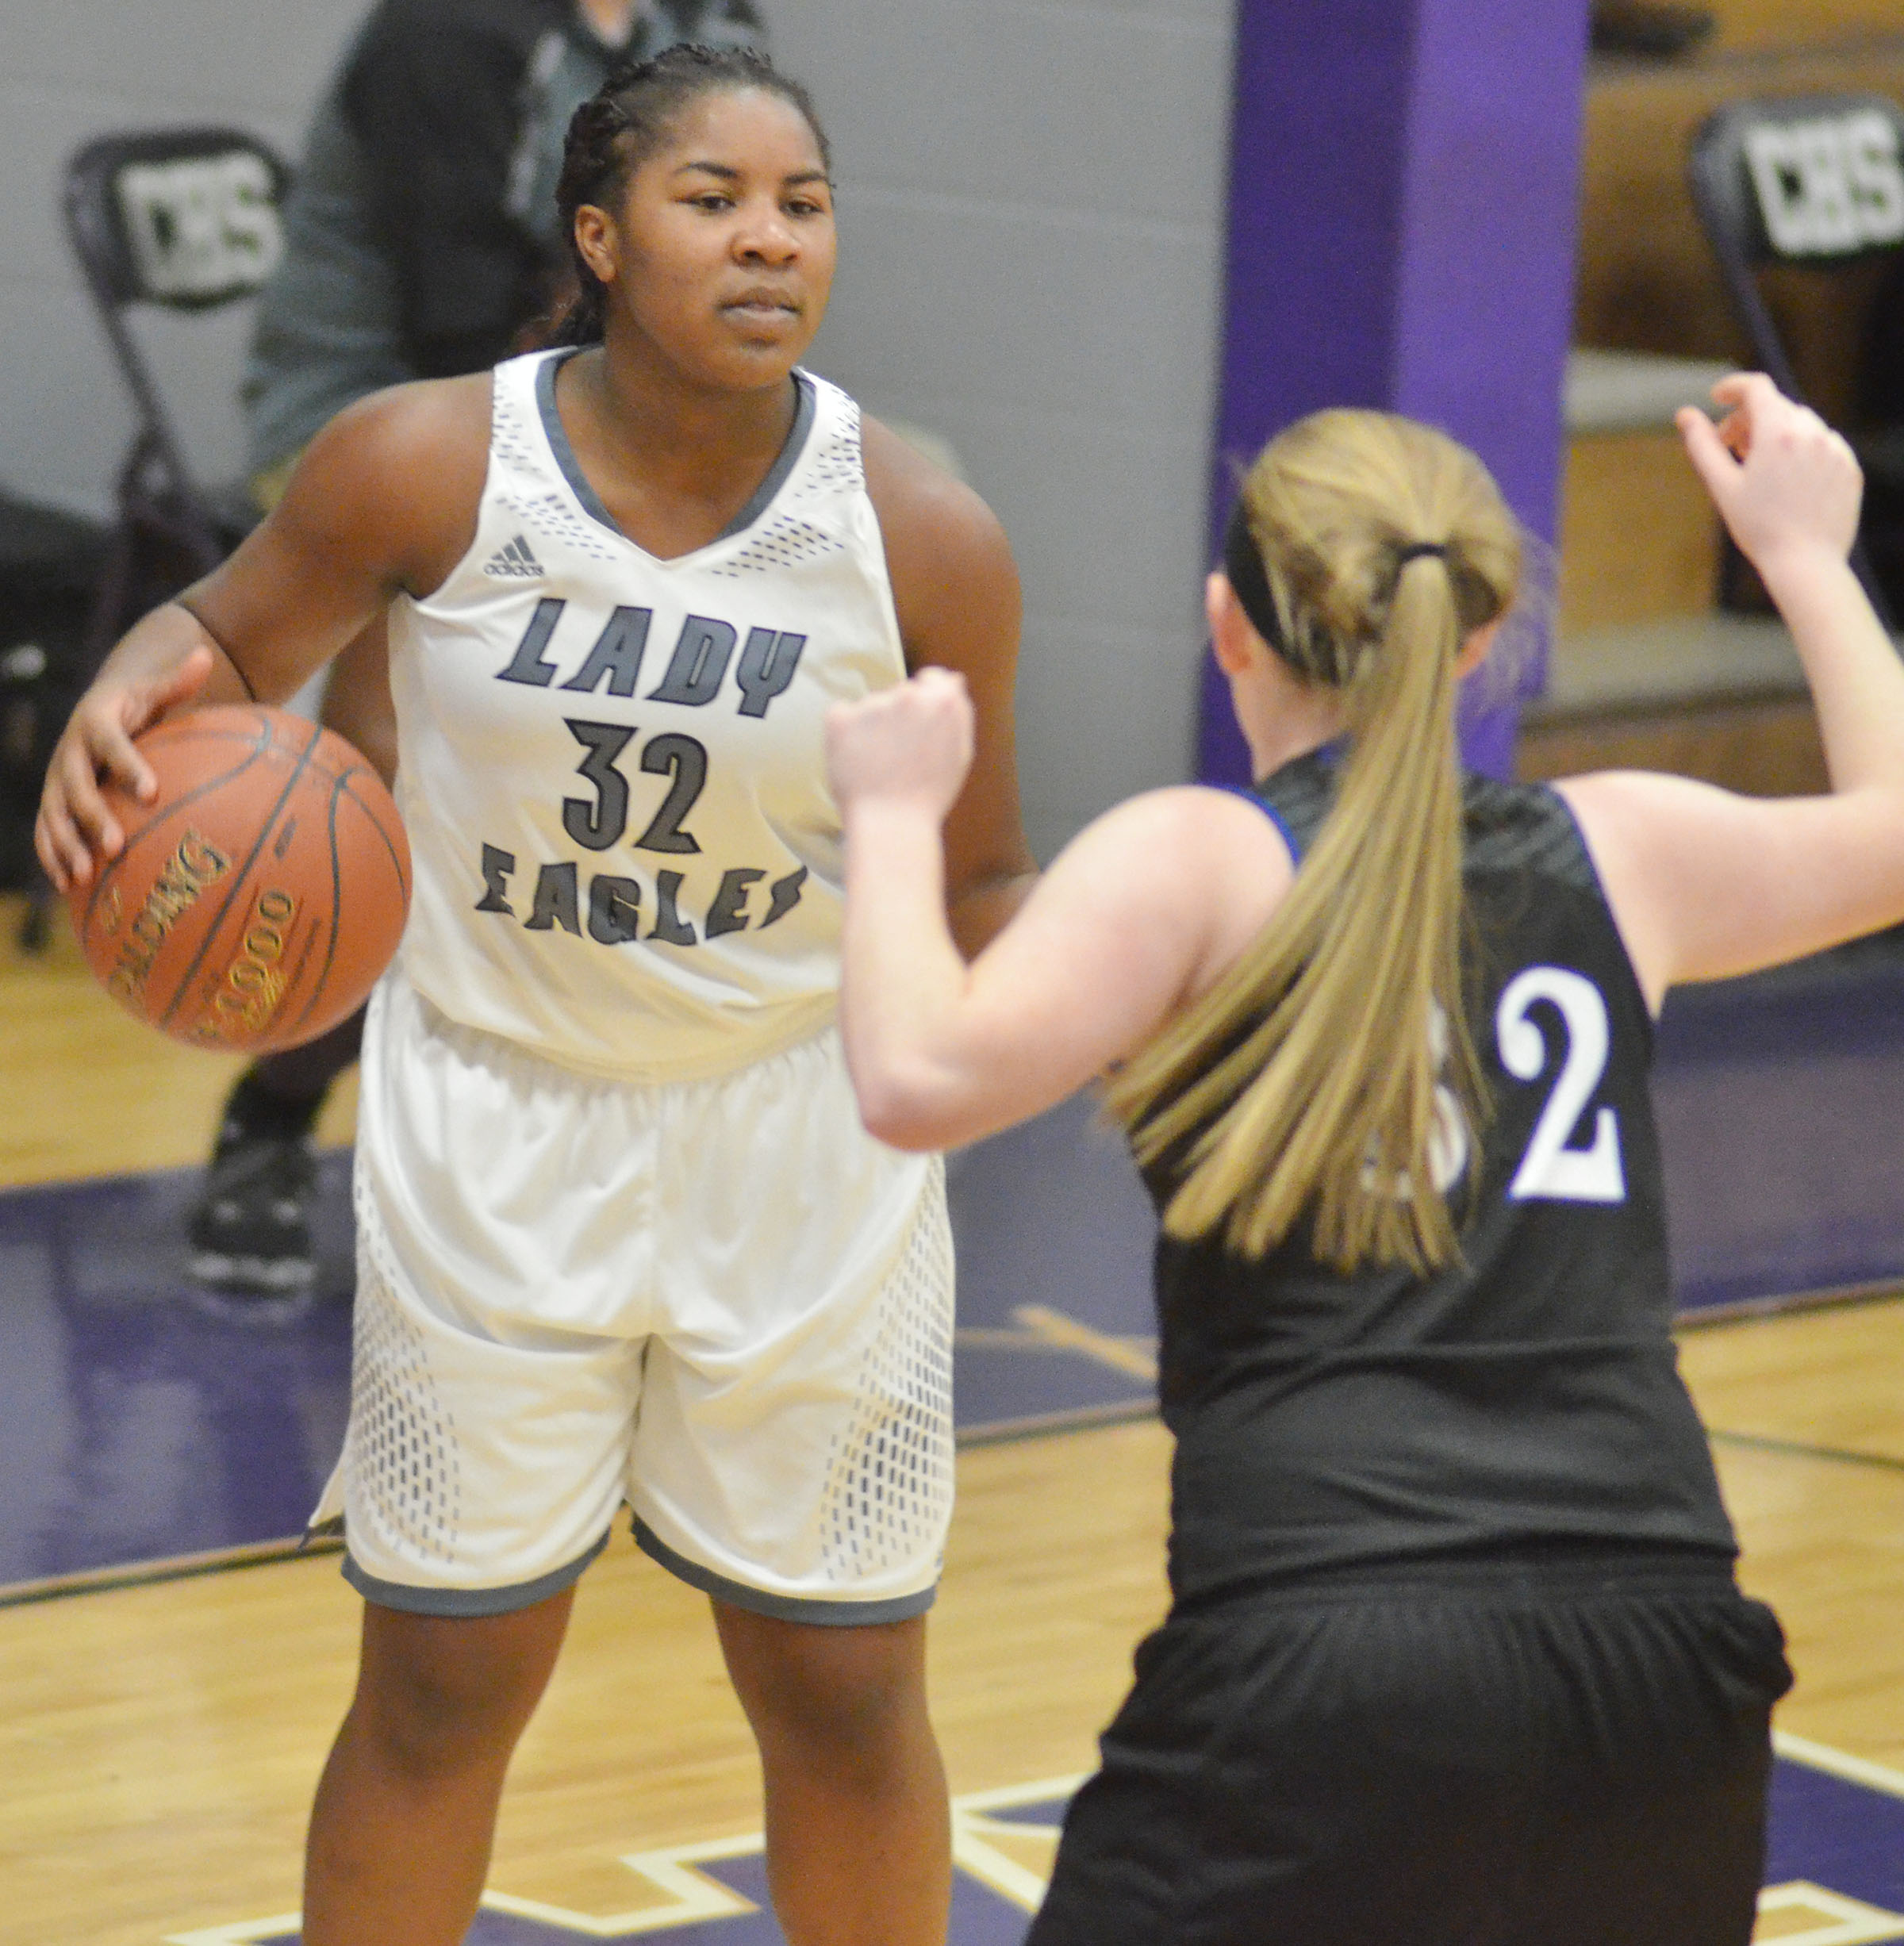 Campbellsville High School junior Nena Barnett has been named to the 5th region all-season team. She led the Lady Eagles to an 18-11 season, which is the team's first winning season in more than 15 years.